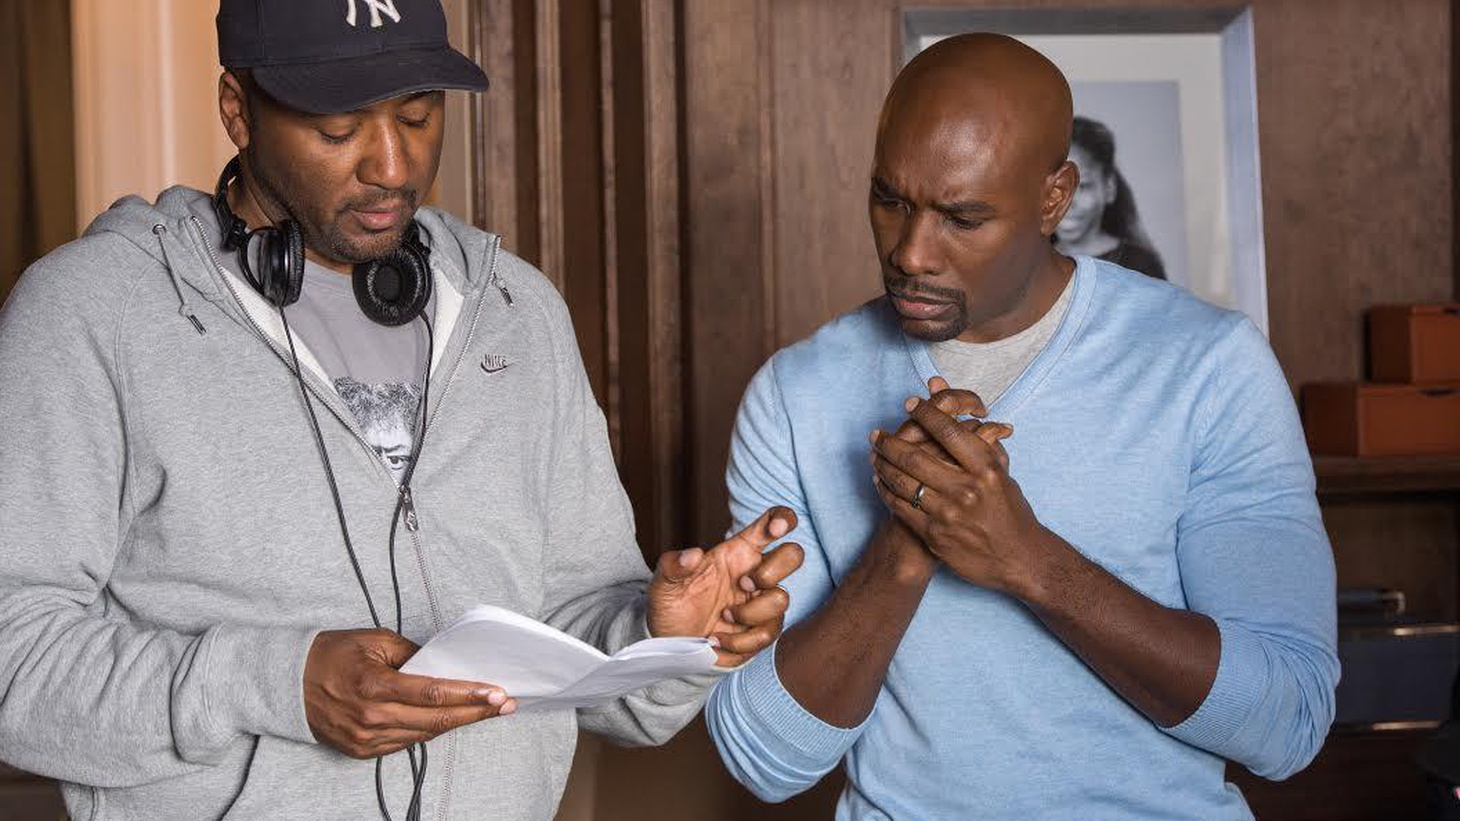 """Writer/director Malcolm D. Lee on why it took him 14 years to make a sequel to """"The Best Man."""" Plus, what is a 'black' movie, anyway?"""